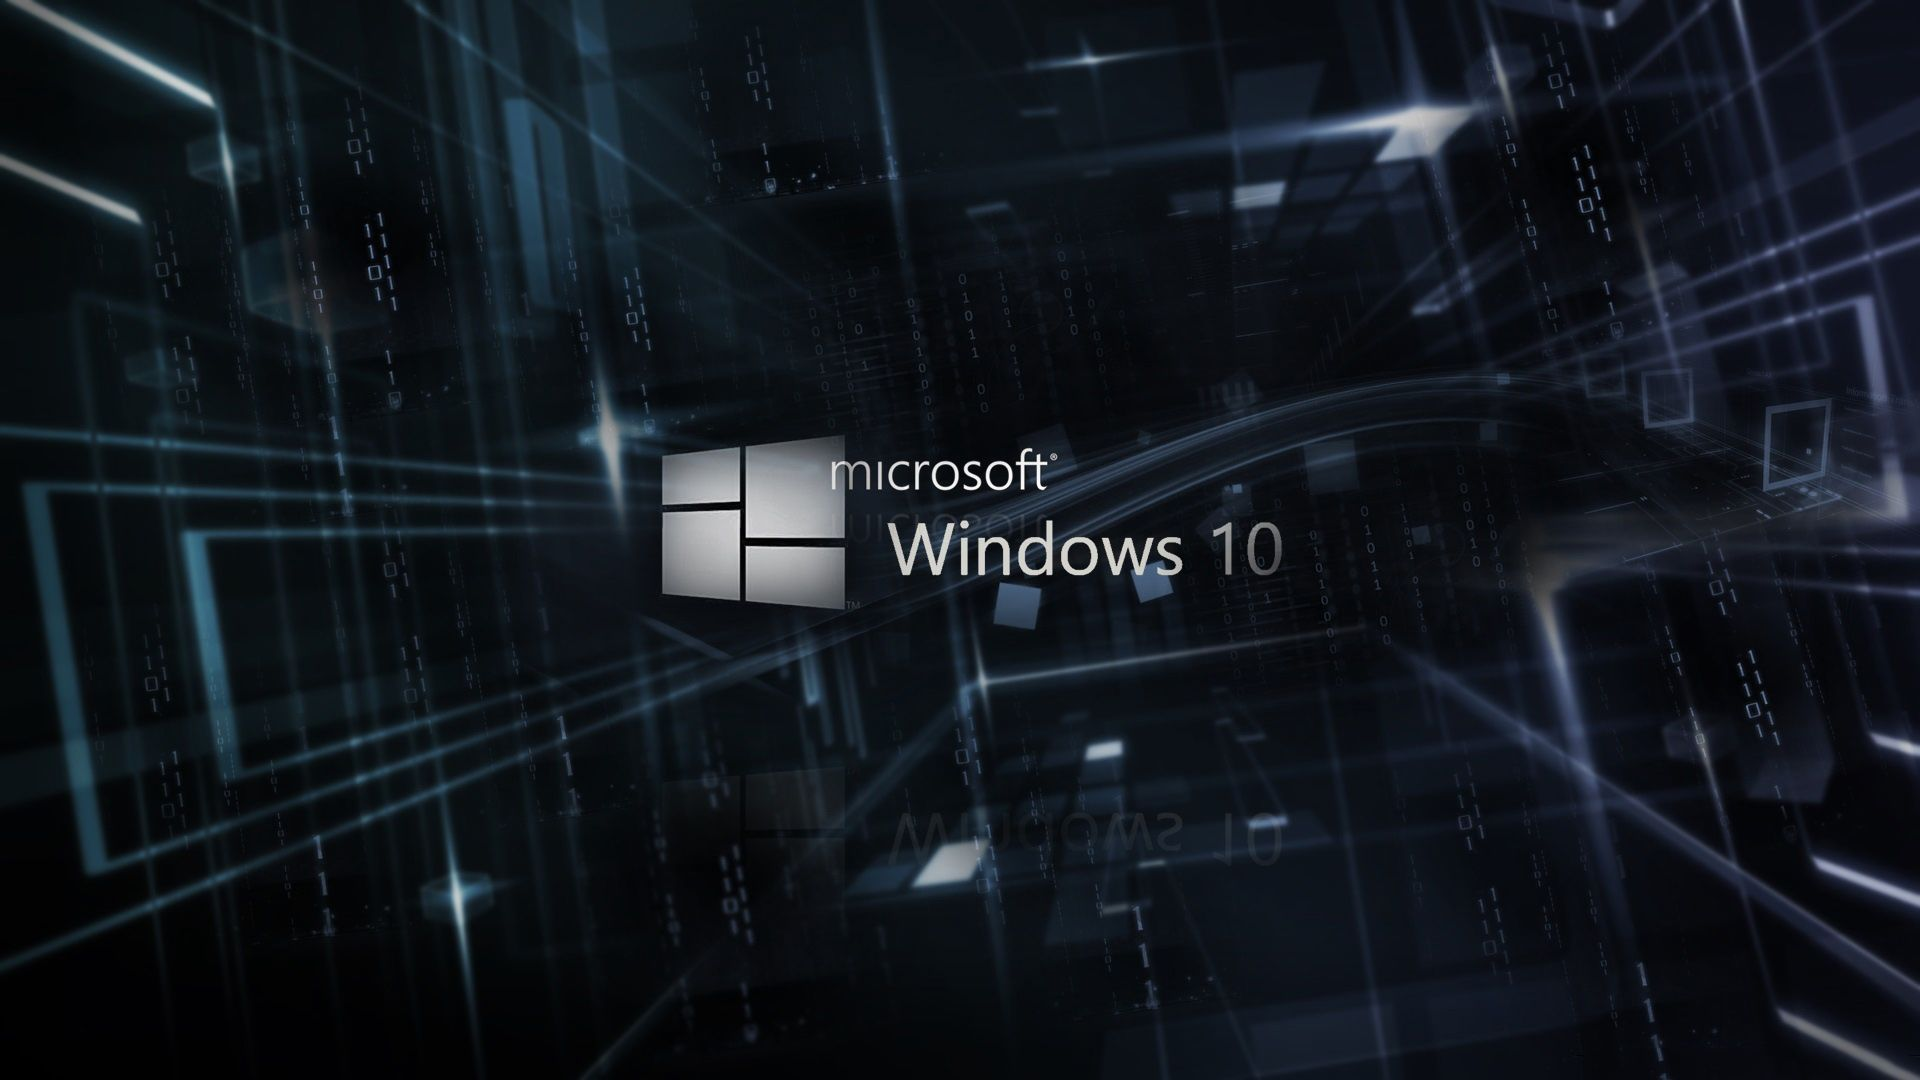 Windows 10 Logo Desktop Wallpaper Hd Newwallpaperhd Com Wallpaper